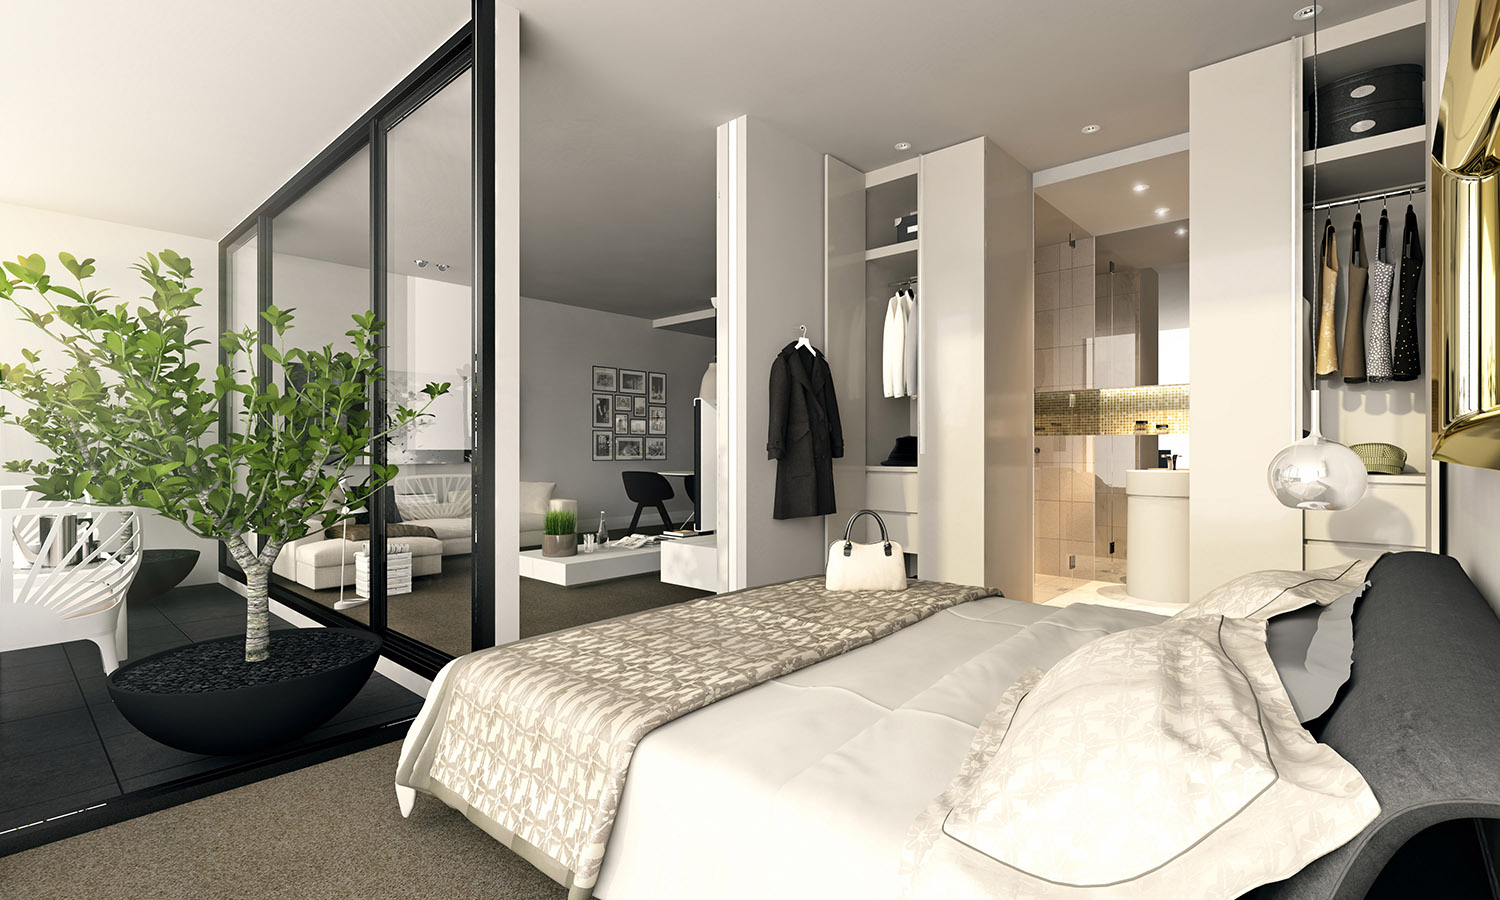 Studio Apartment Design Layouts studio apartment interiors inspiration